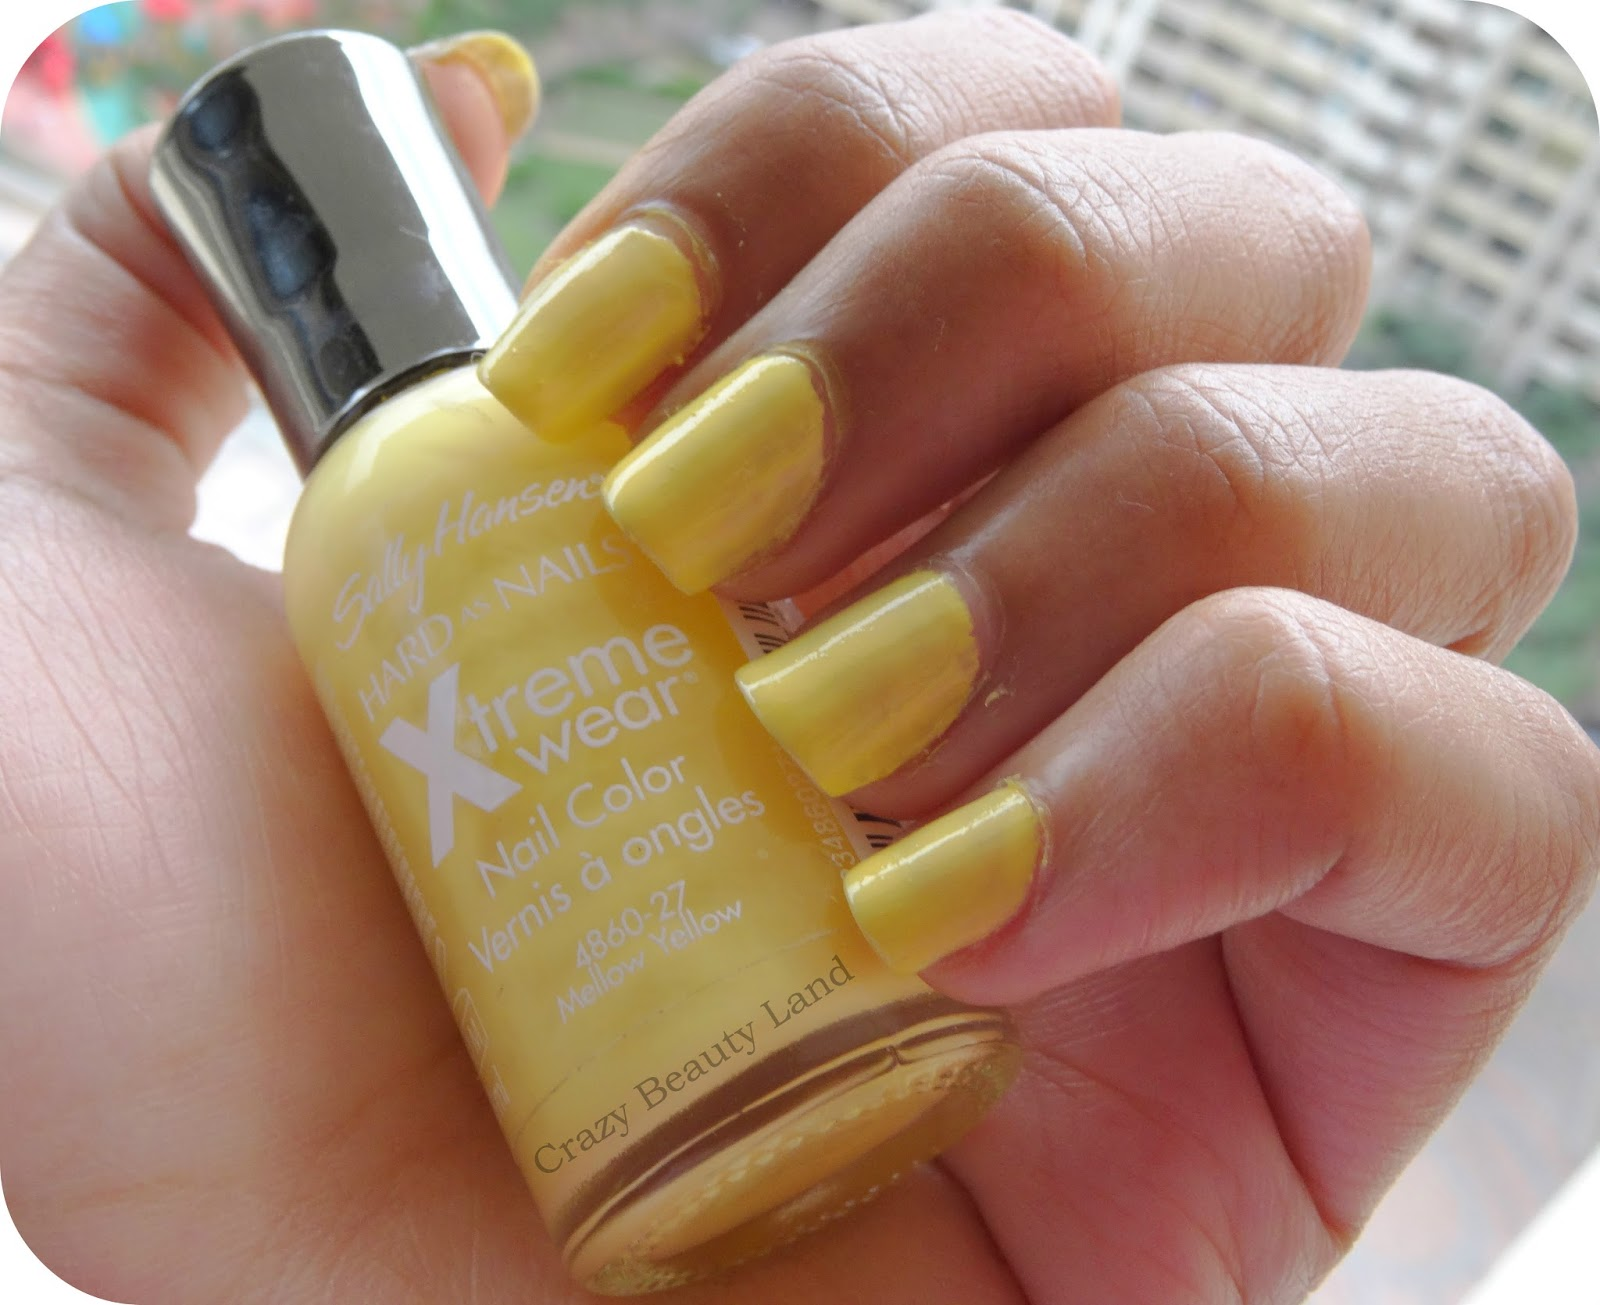 We All Need A Little Yellow Sometimes Sally Hansen Hard As Nails